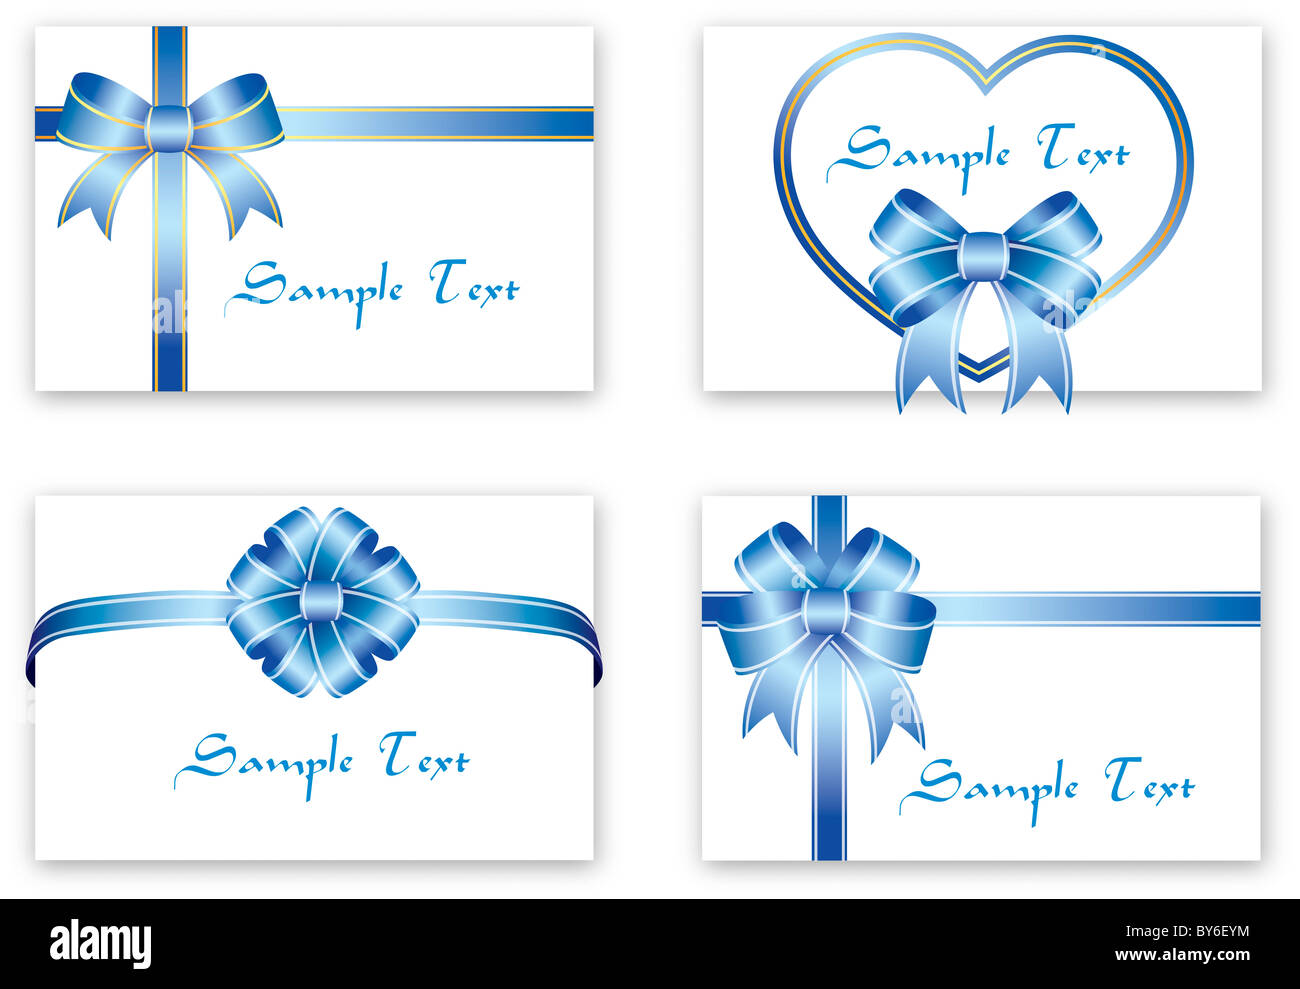 greeting card sample - Stock Image